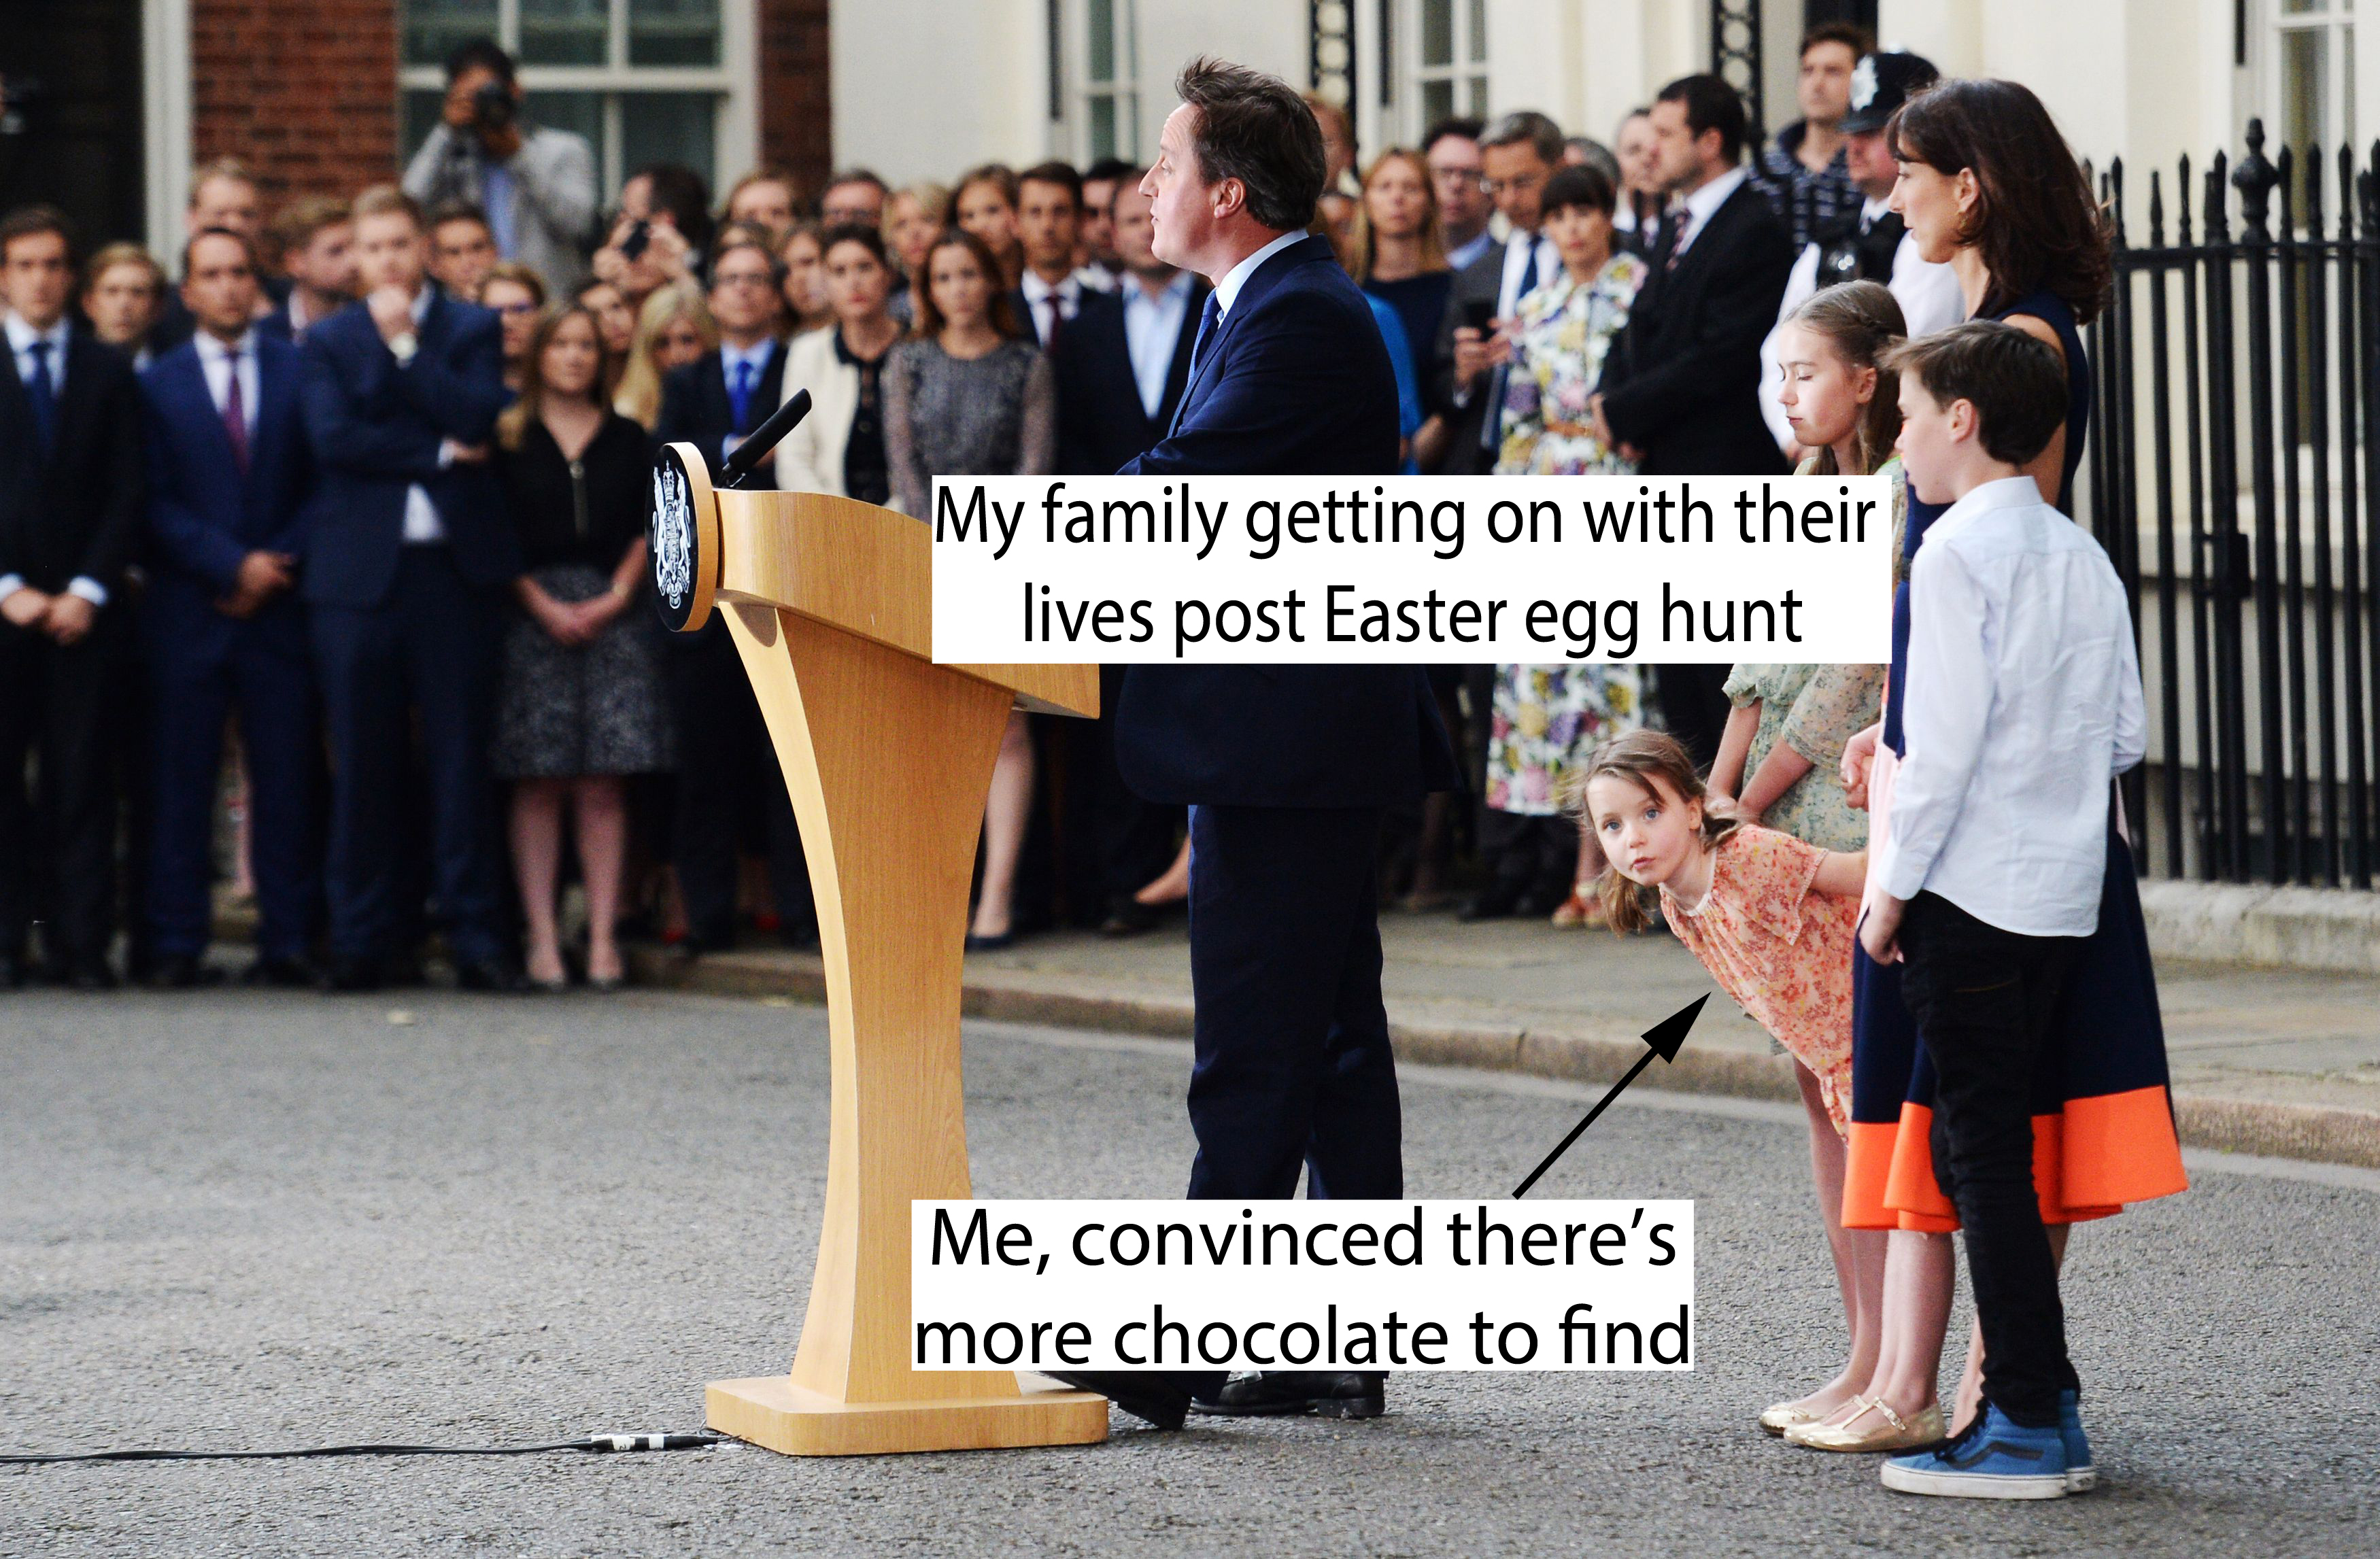 David Cameron outside Number 10 with his family